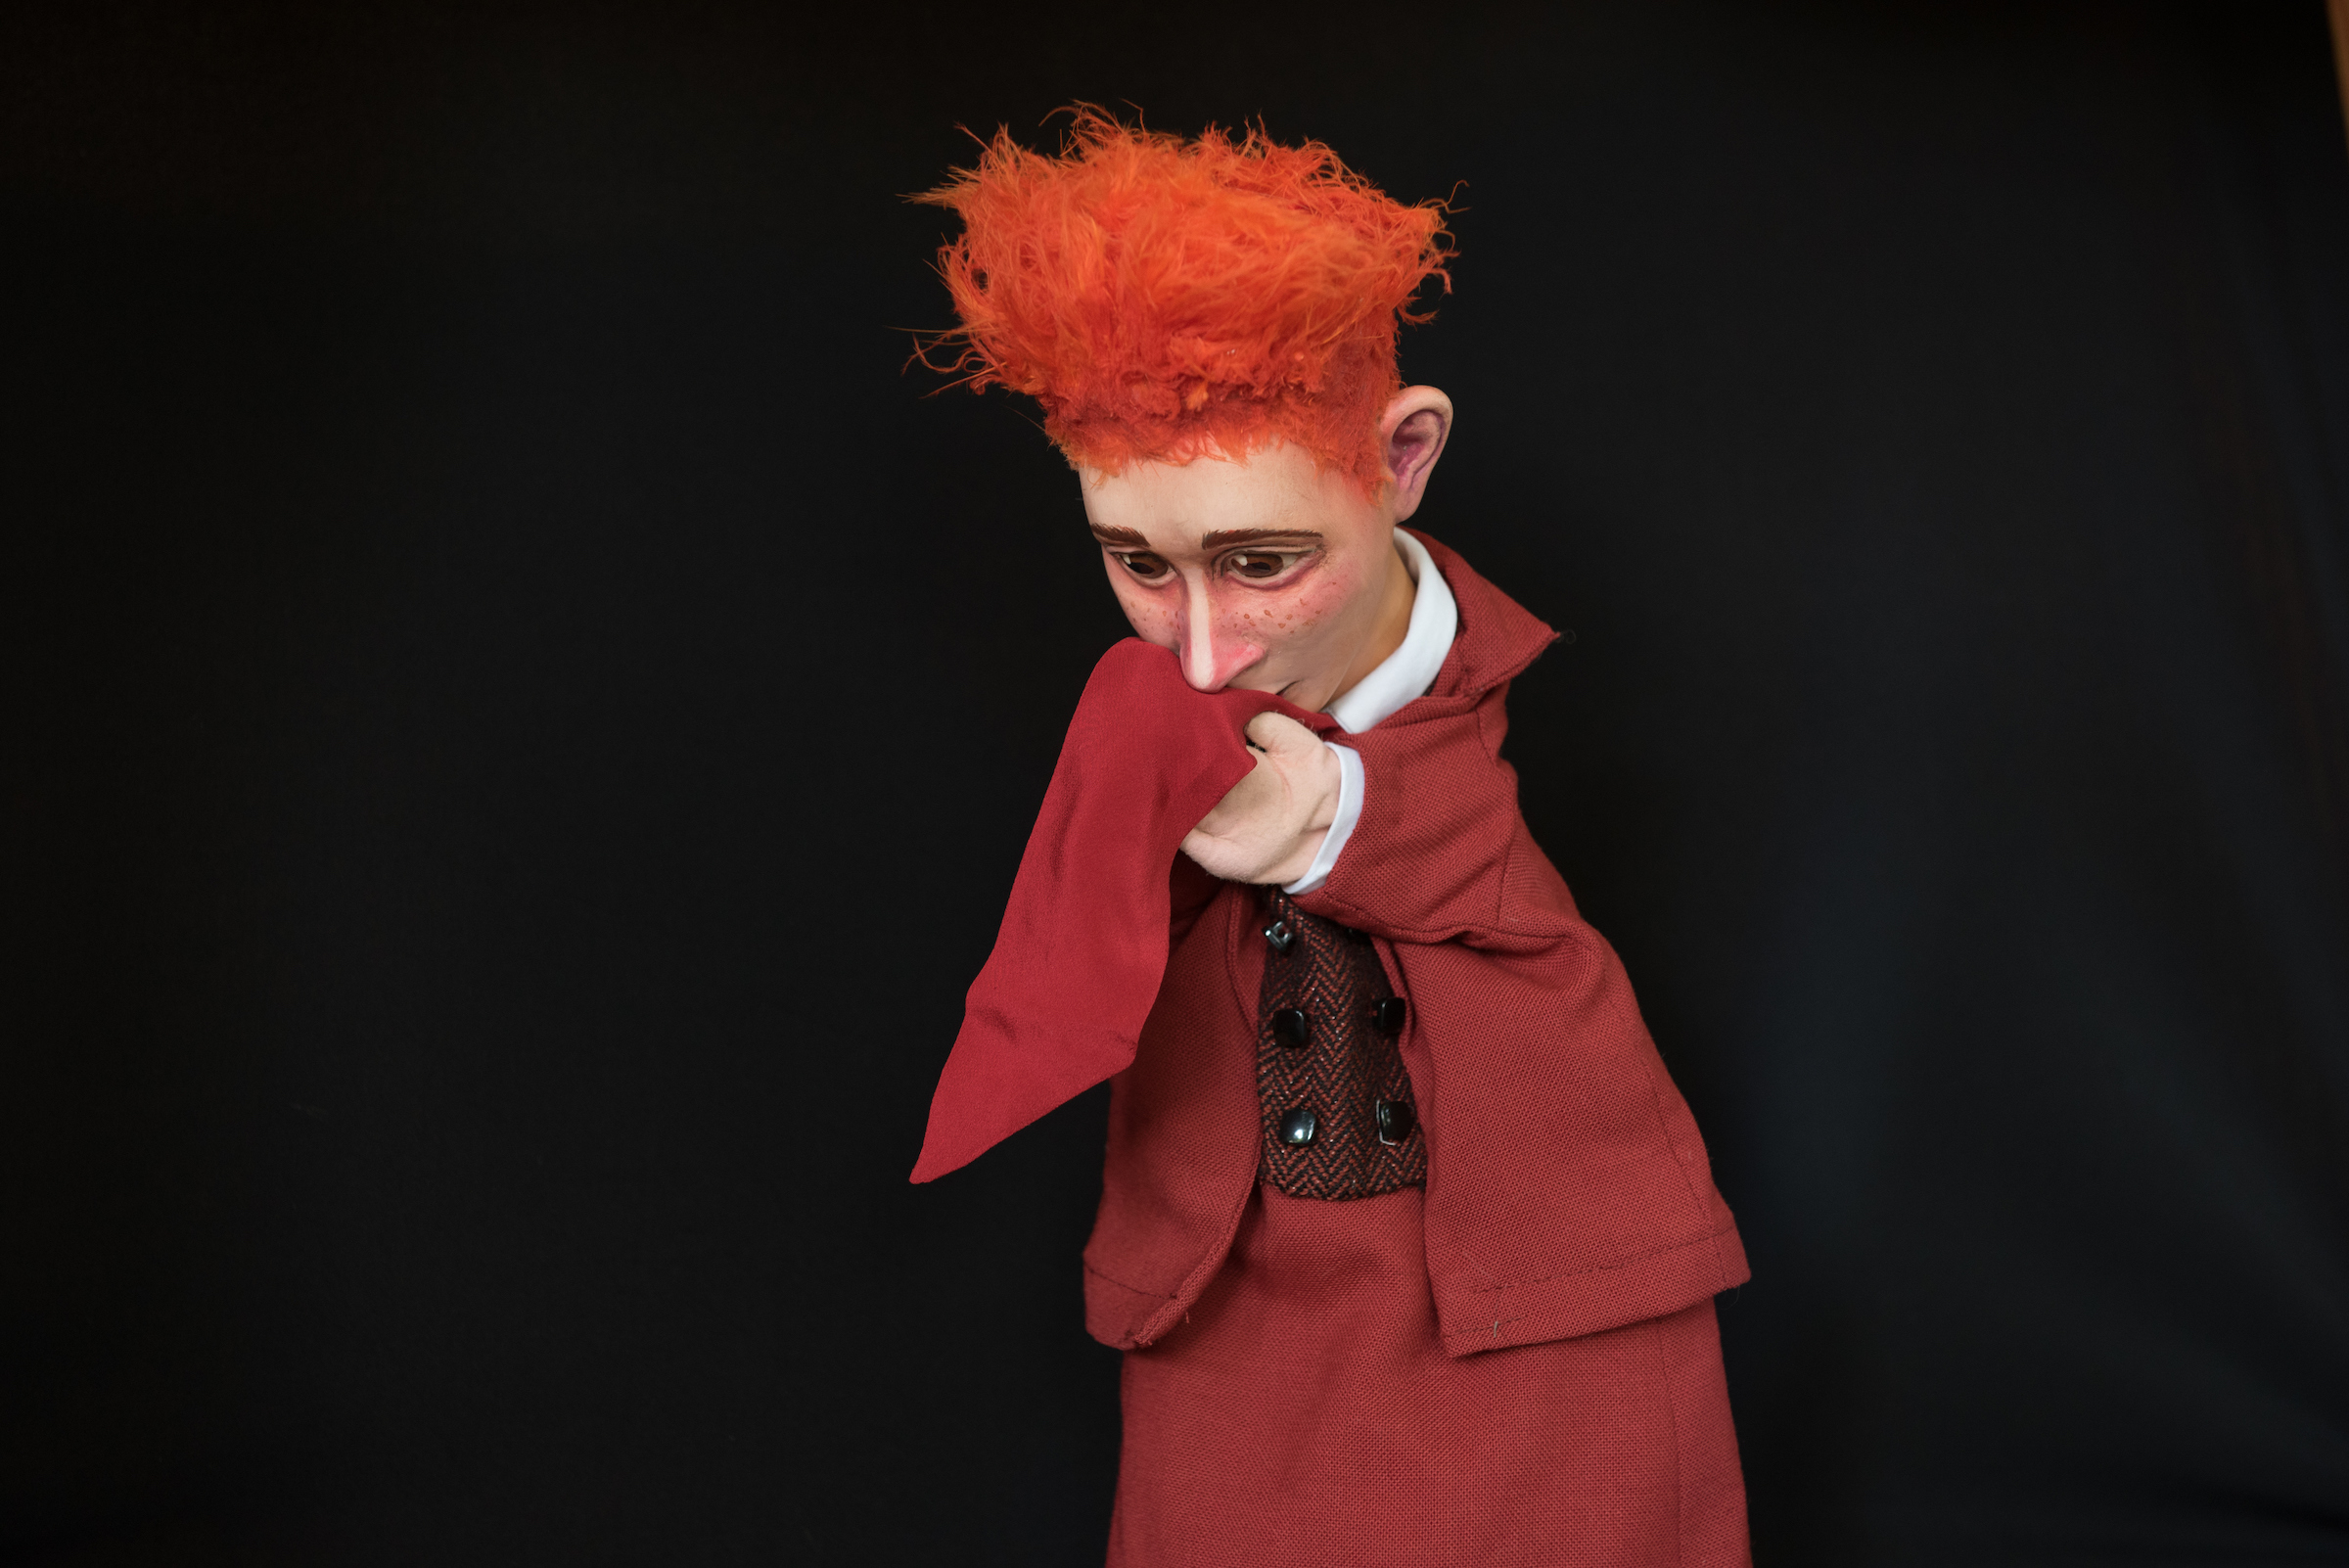 a red-haired puppet holding a red cloth